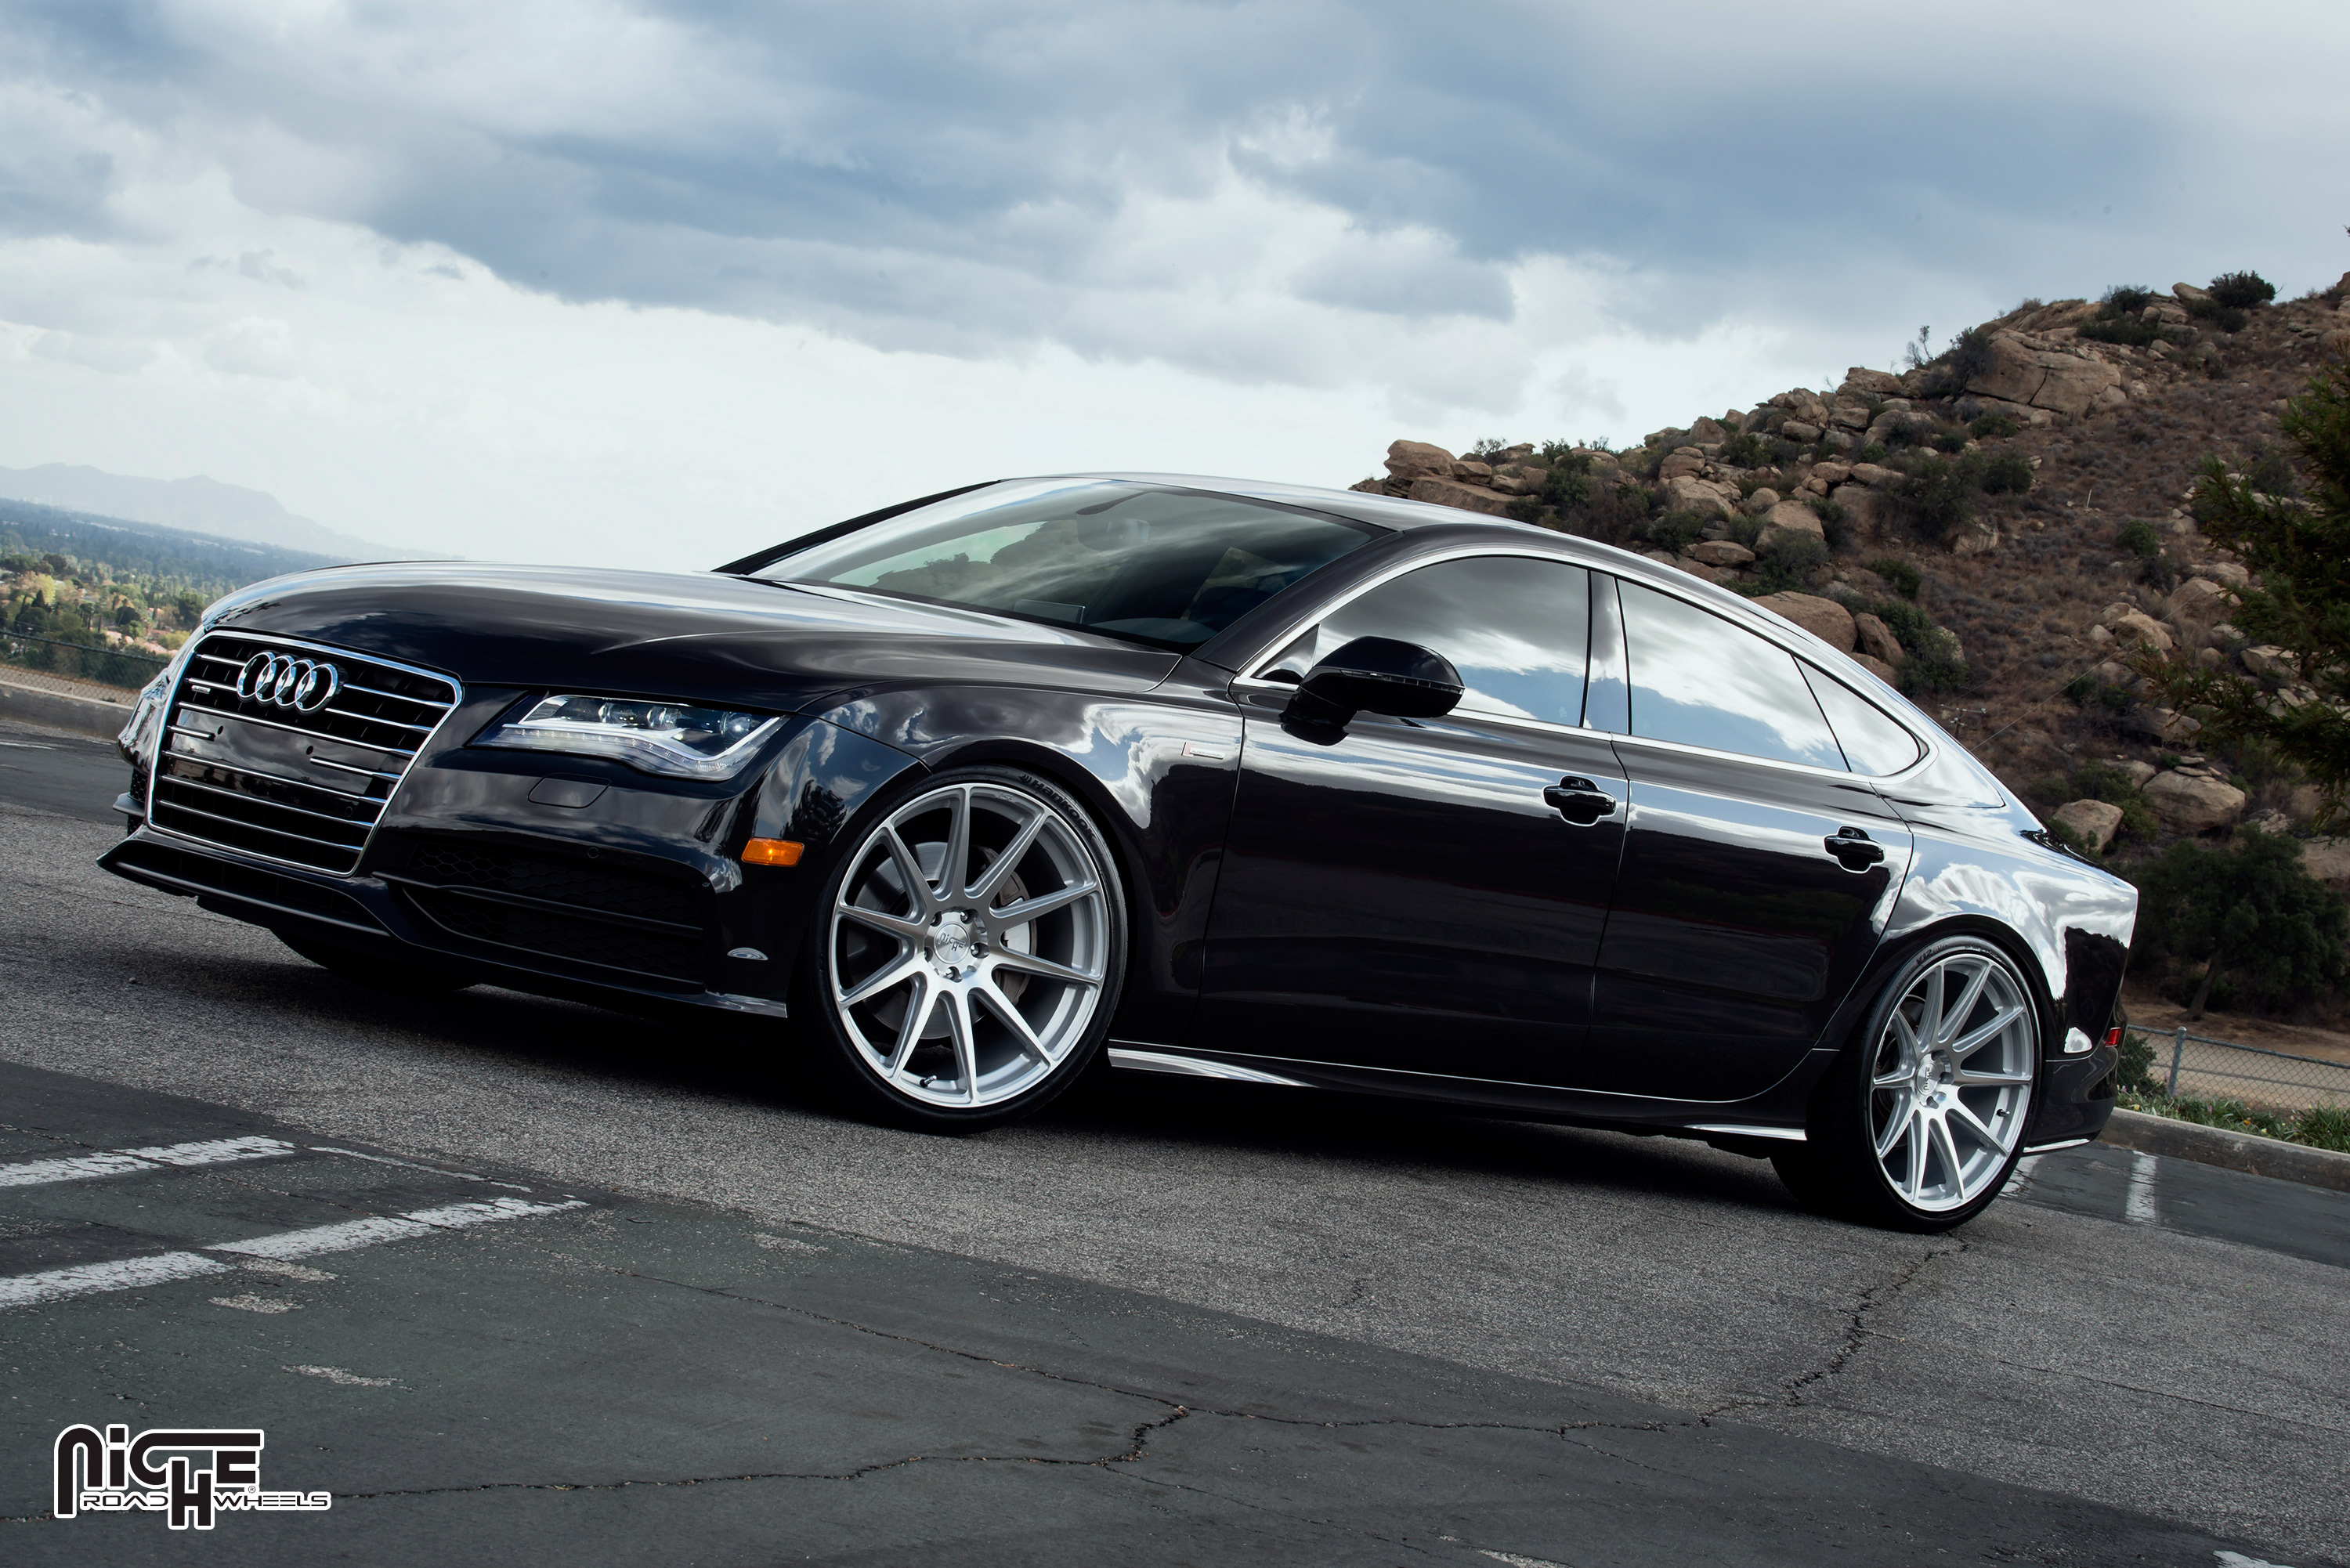 Audi A7 Essen M146 Gallery Mht Wheels Inc